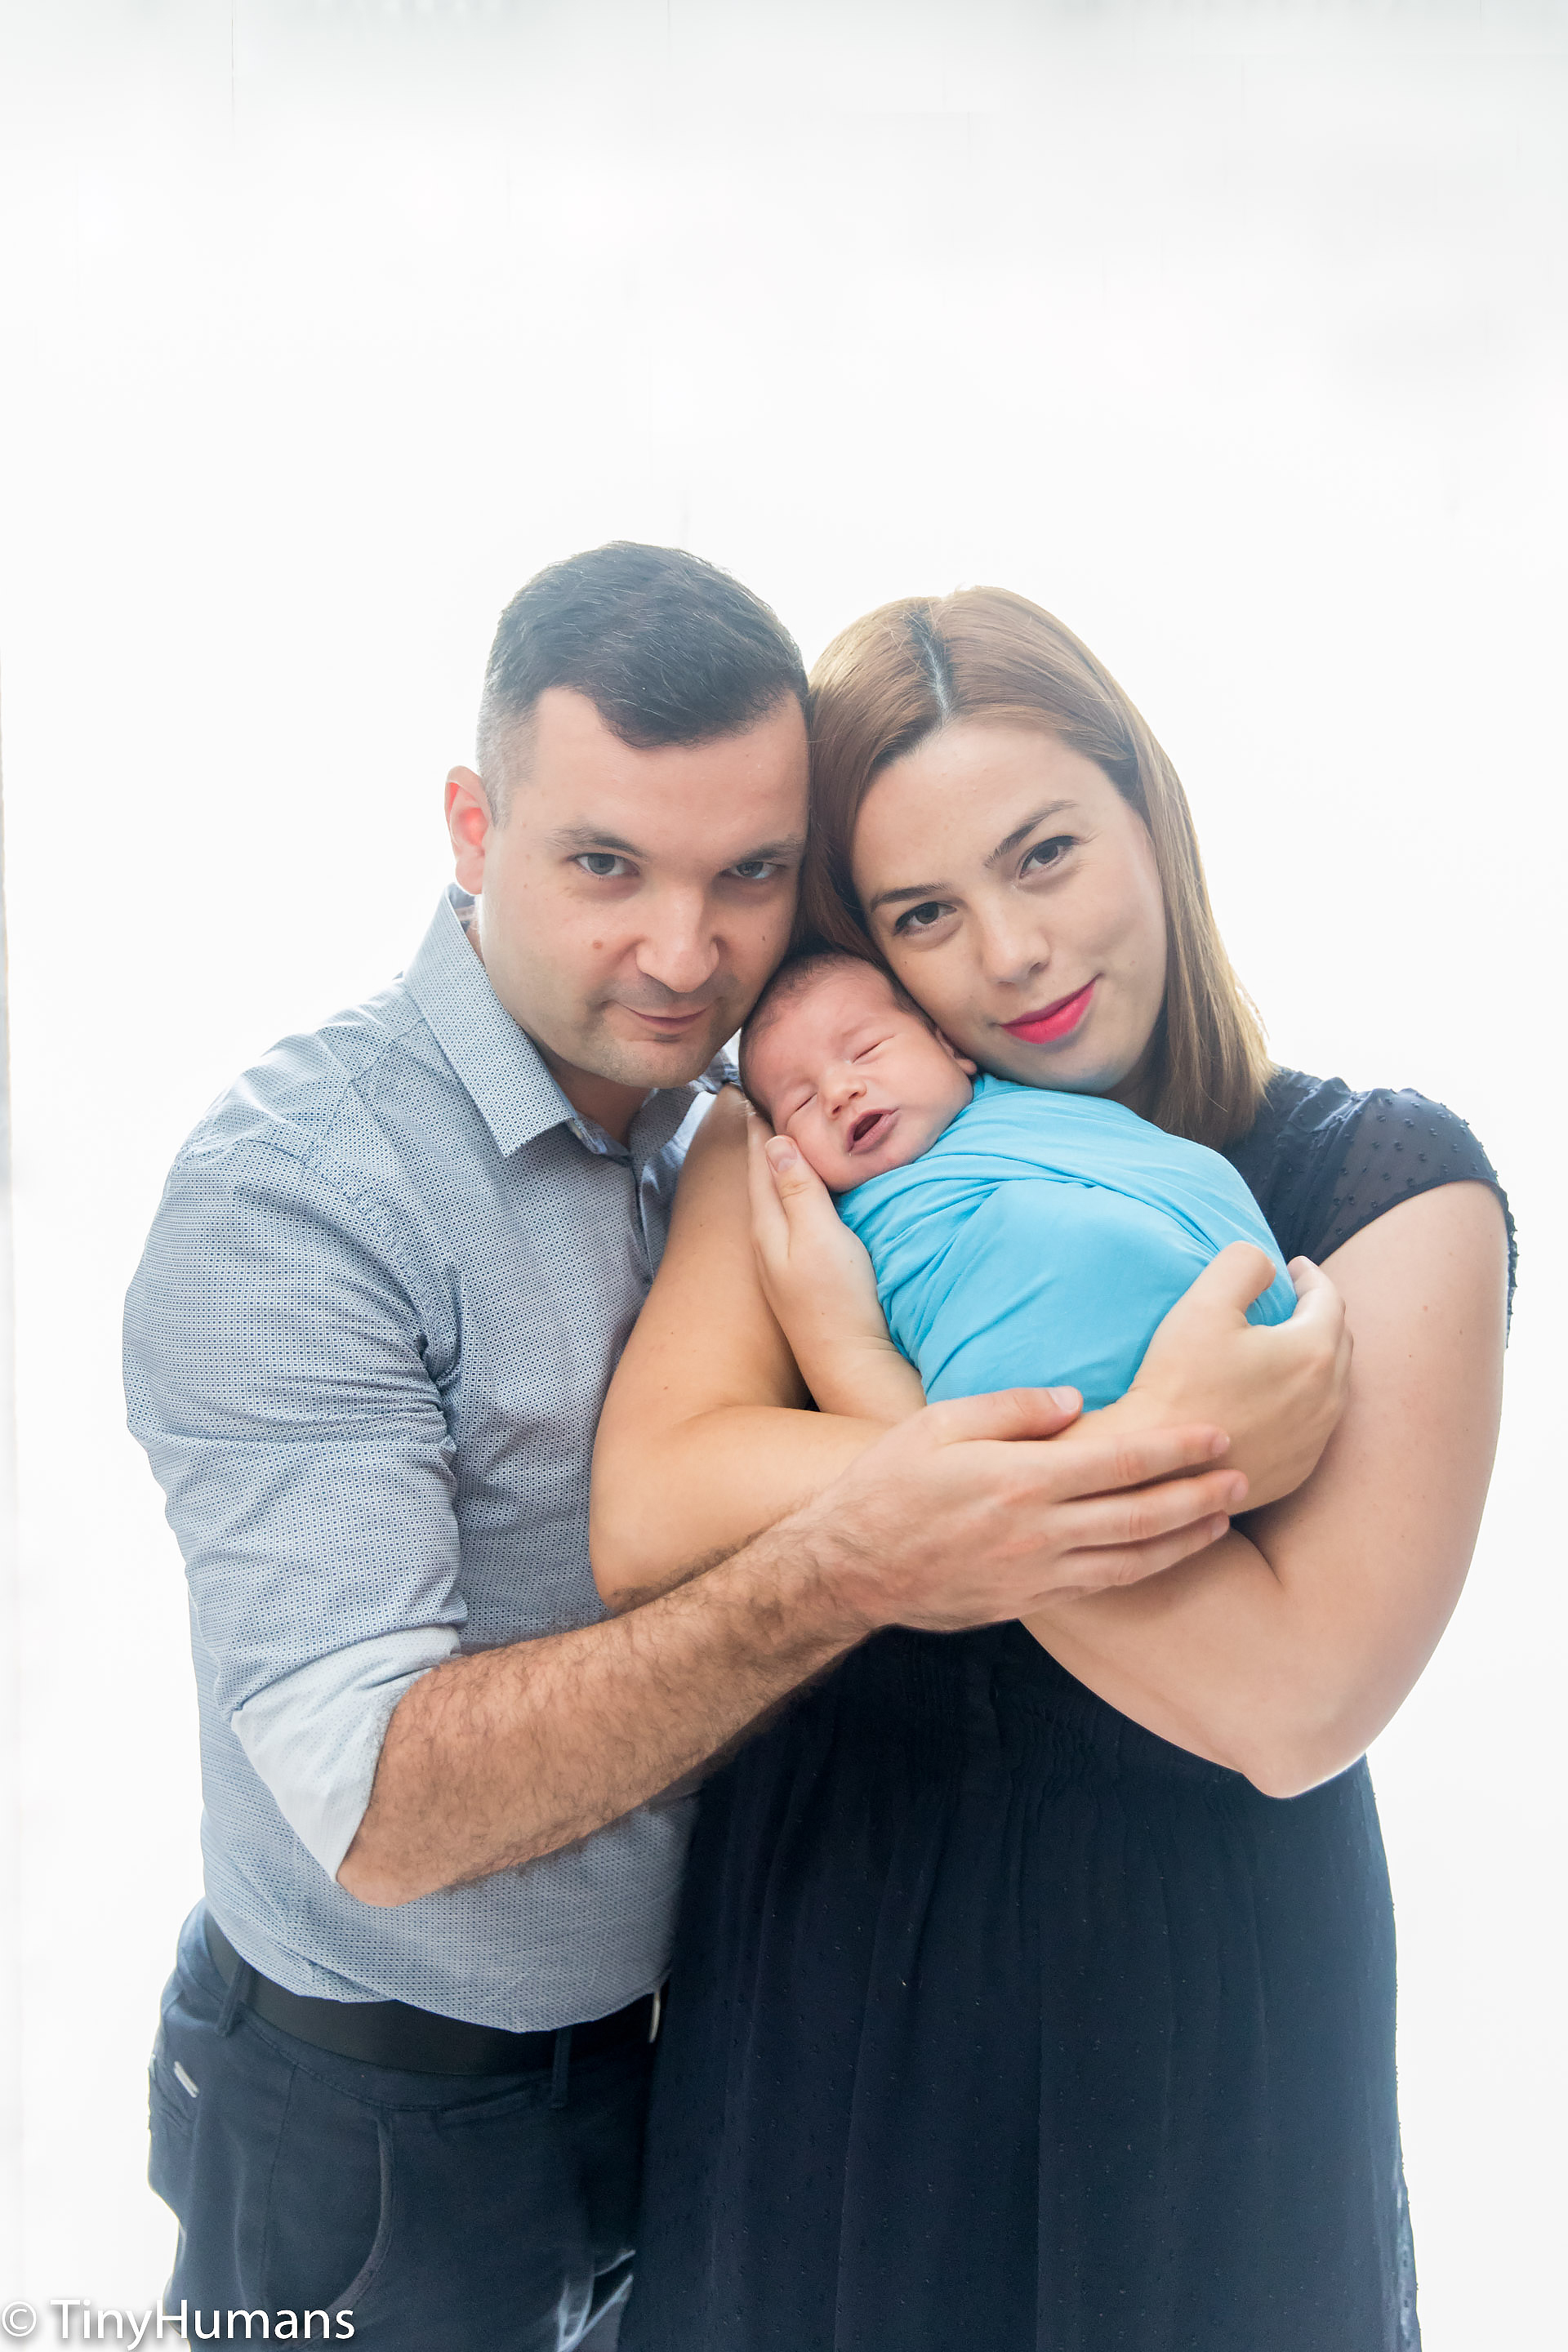 Parents with newborn baby at photo session